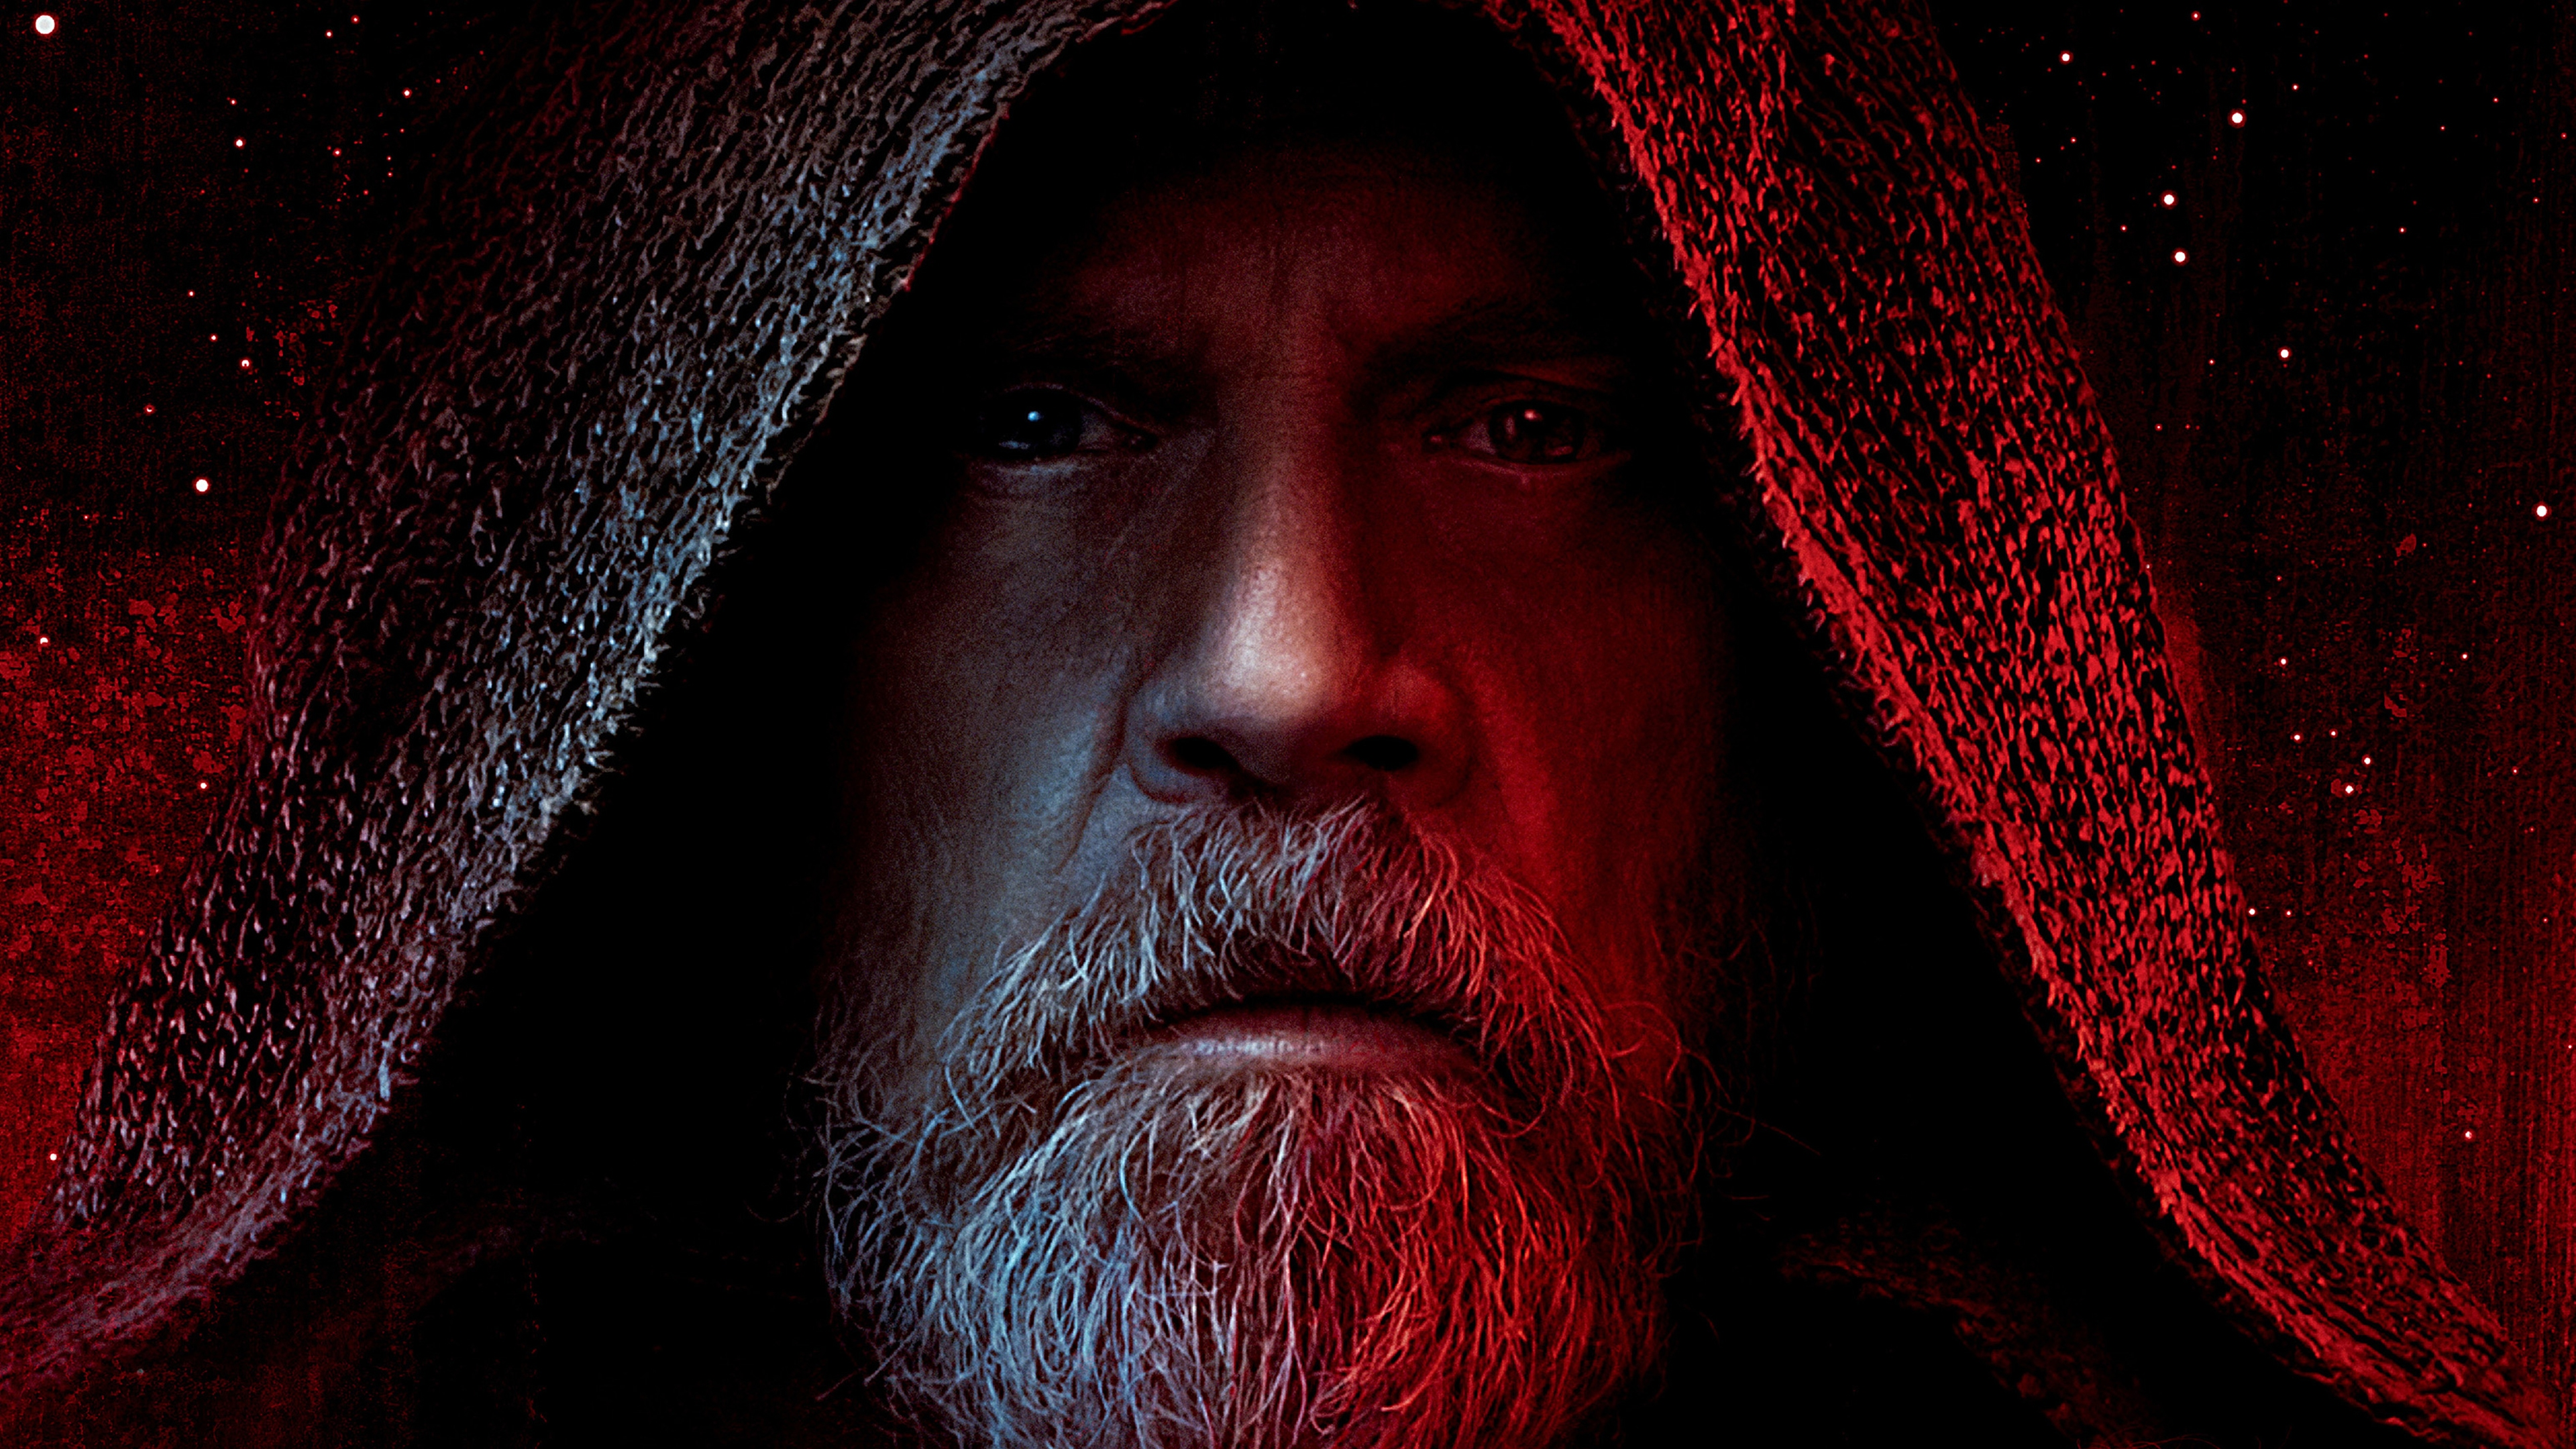 4k-luke-skywalker-star-wars-the-last-jedi-mark-hamill-2015